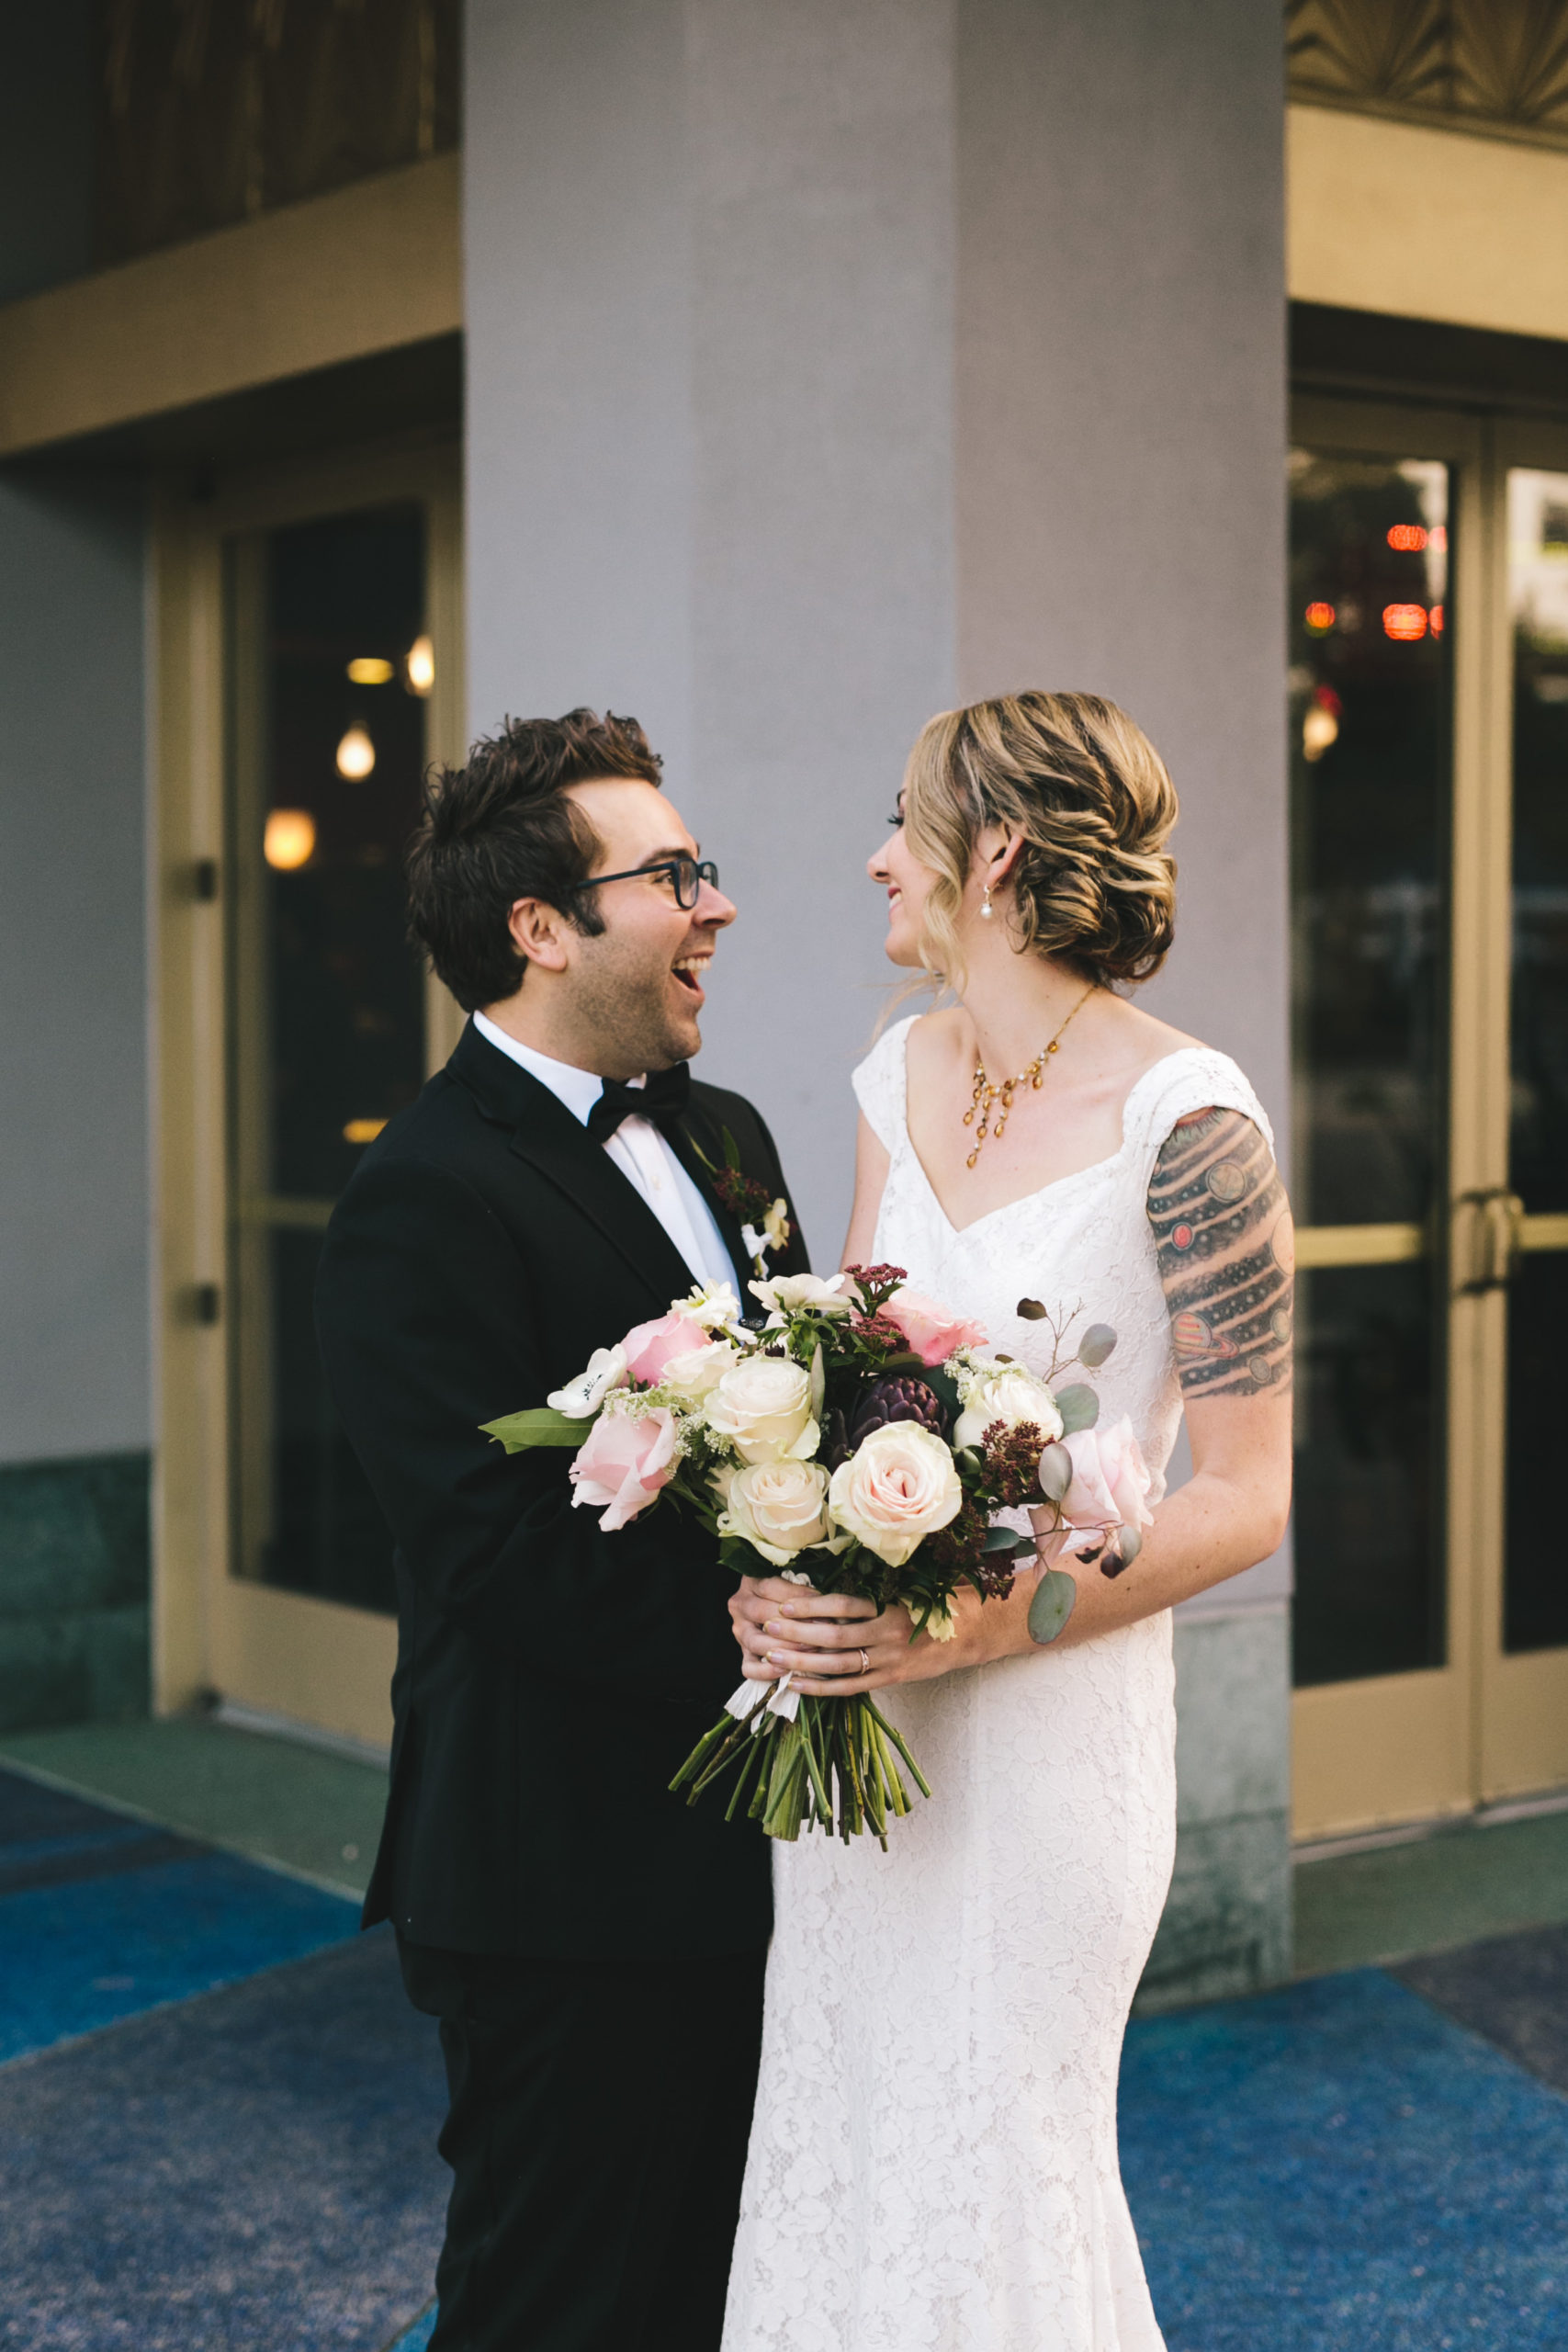 Couple married at Culver Hotel